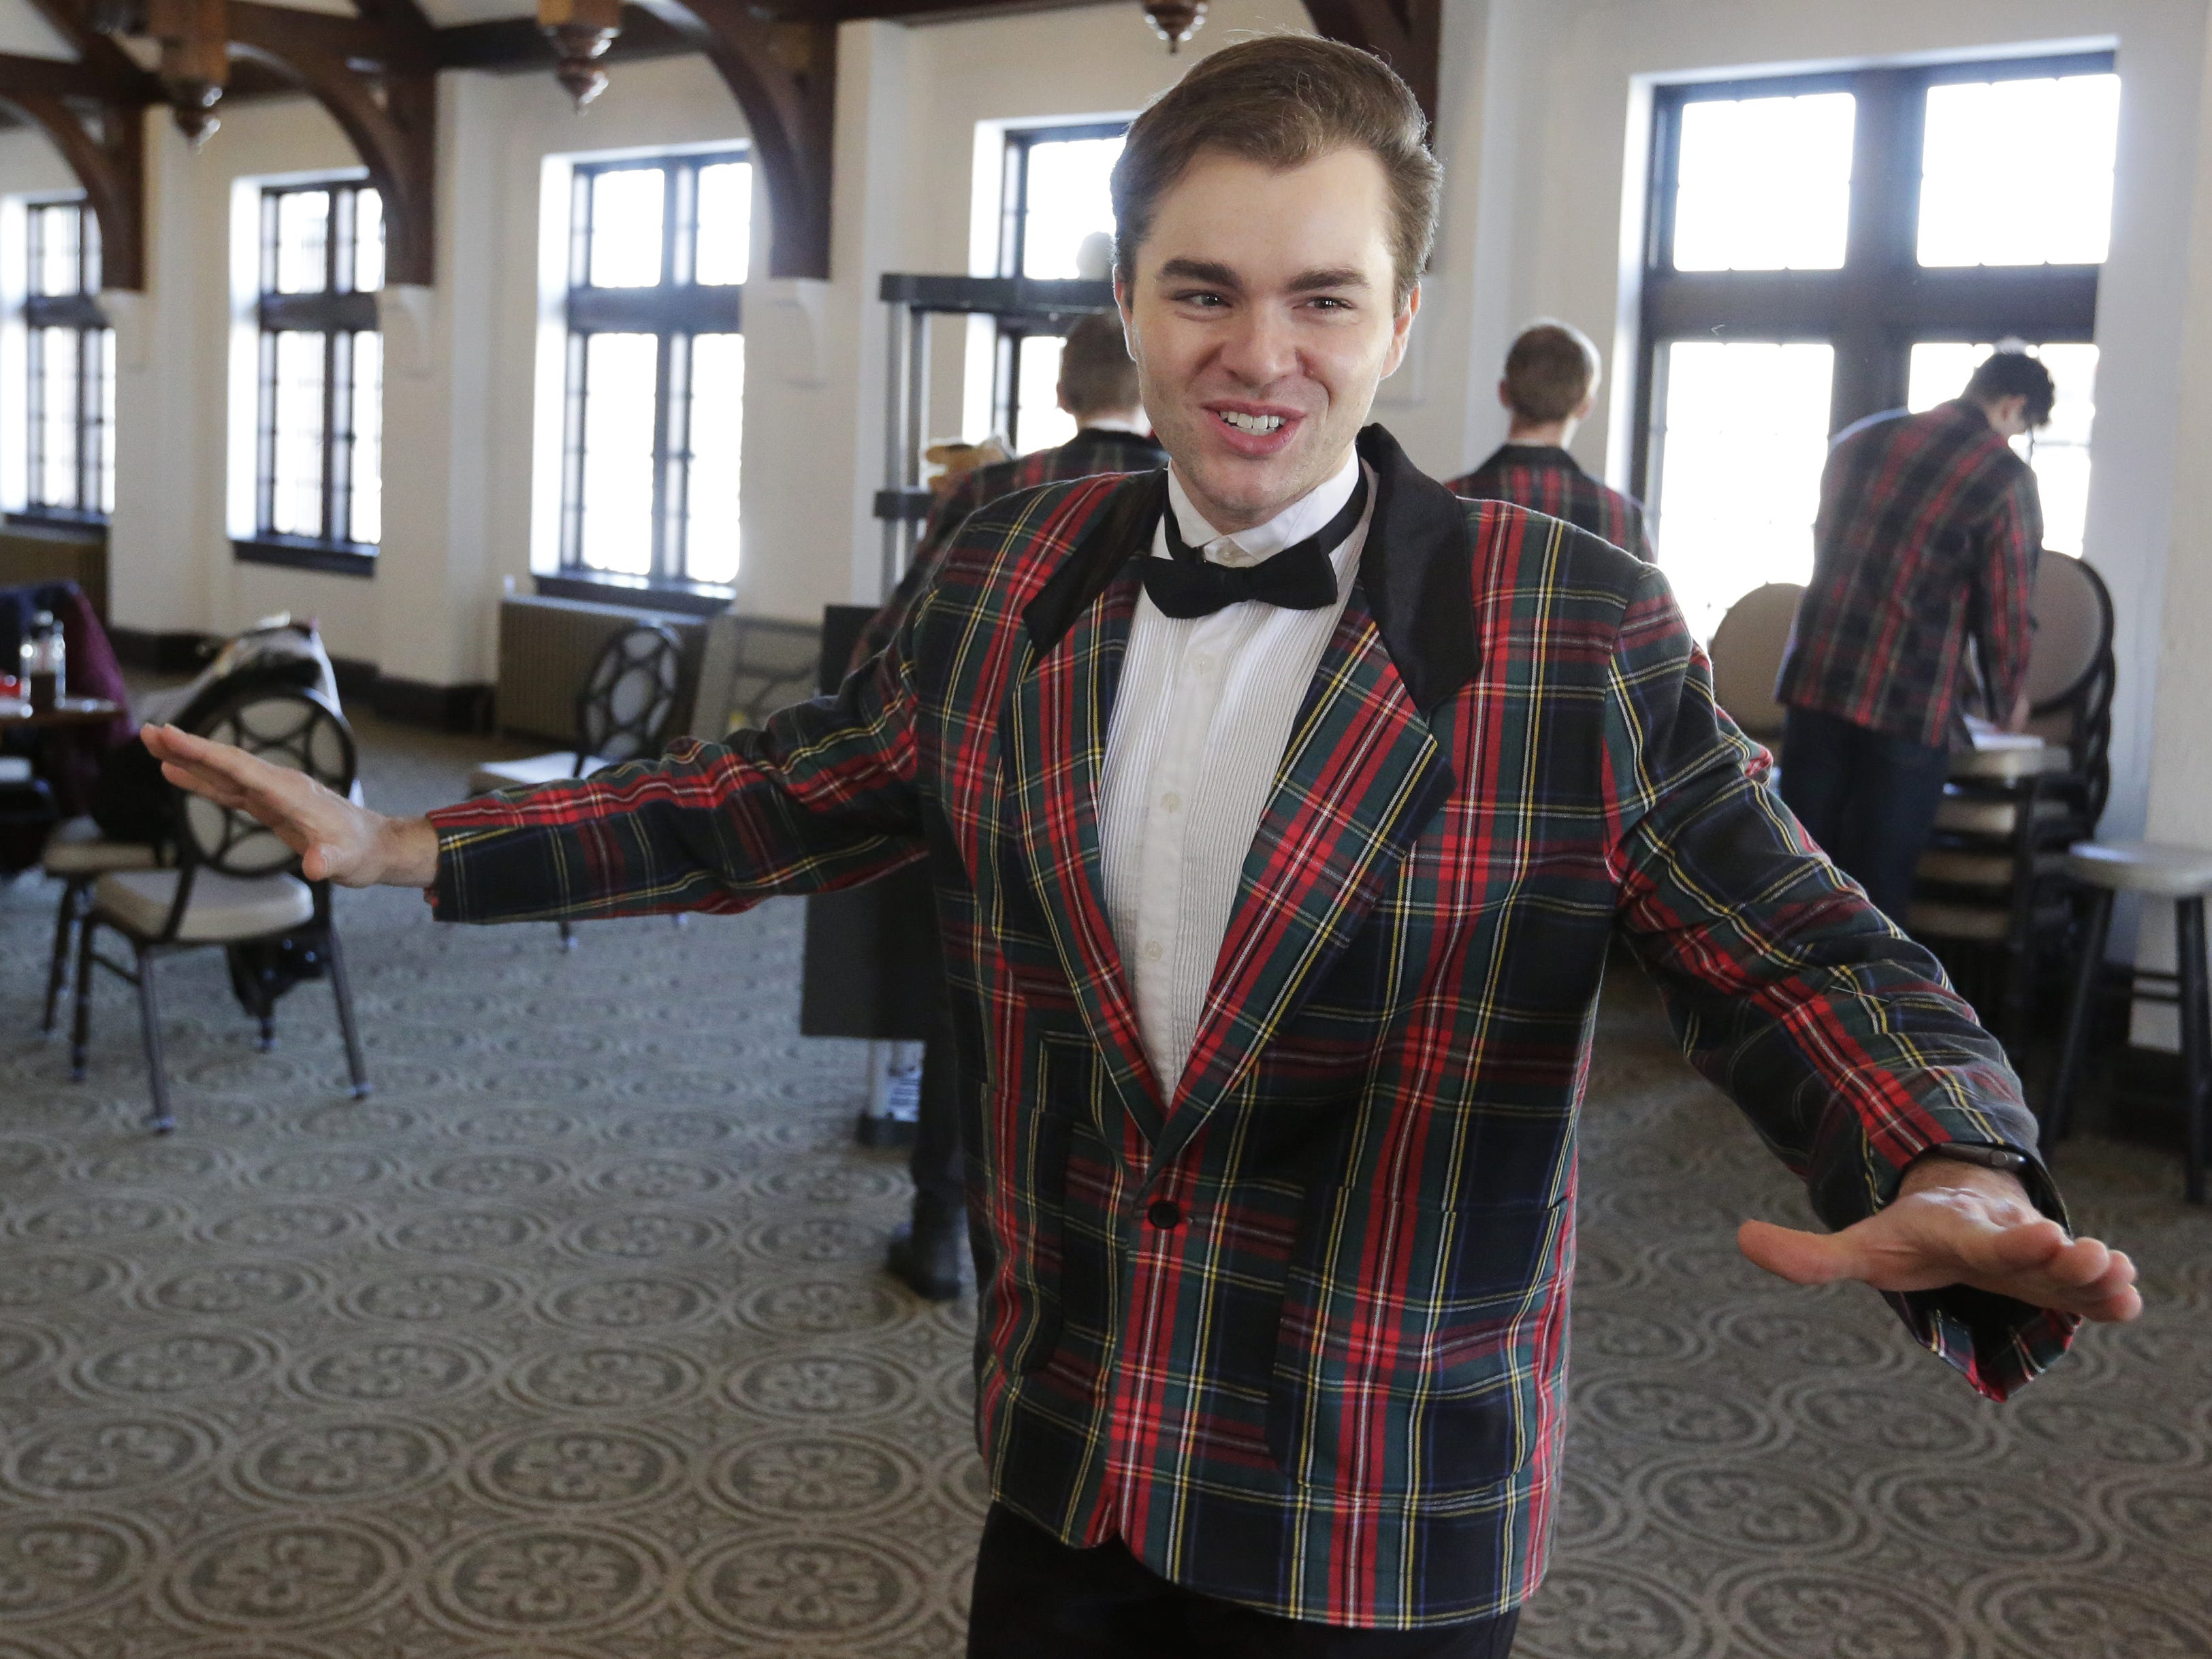 """Bryce Dutton rehearses Thursday, Dec. 6, 2018, for the dinner theater presentation """"Forever Plaid: Plaid Tidings,"""" which opens Dec. 13, 2018, at The Howard in Oshkosh."""